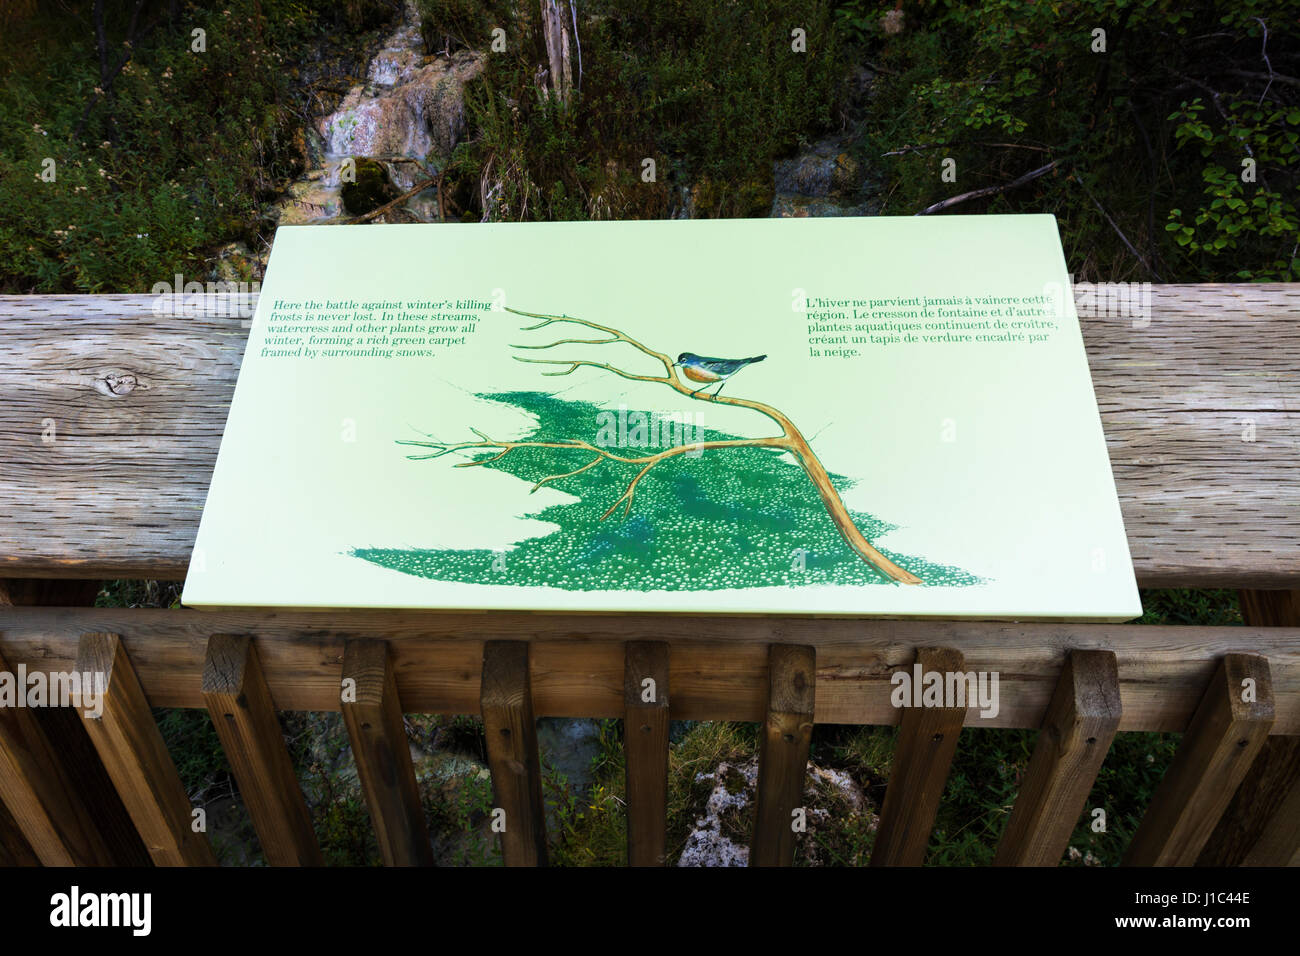 Interpretive sign at Cave and Basin National Historic Site, Banff National Park, Alberta, Canada - Stock Image